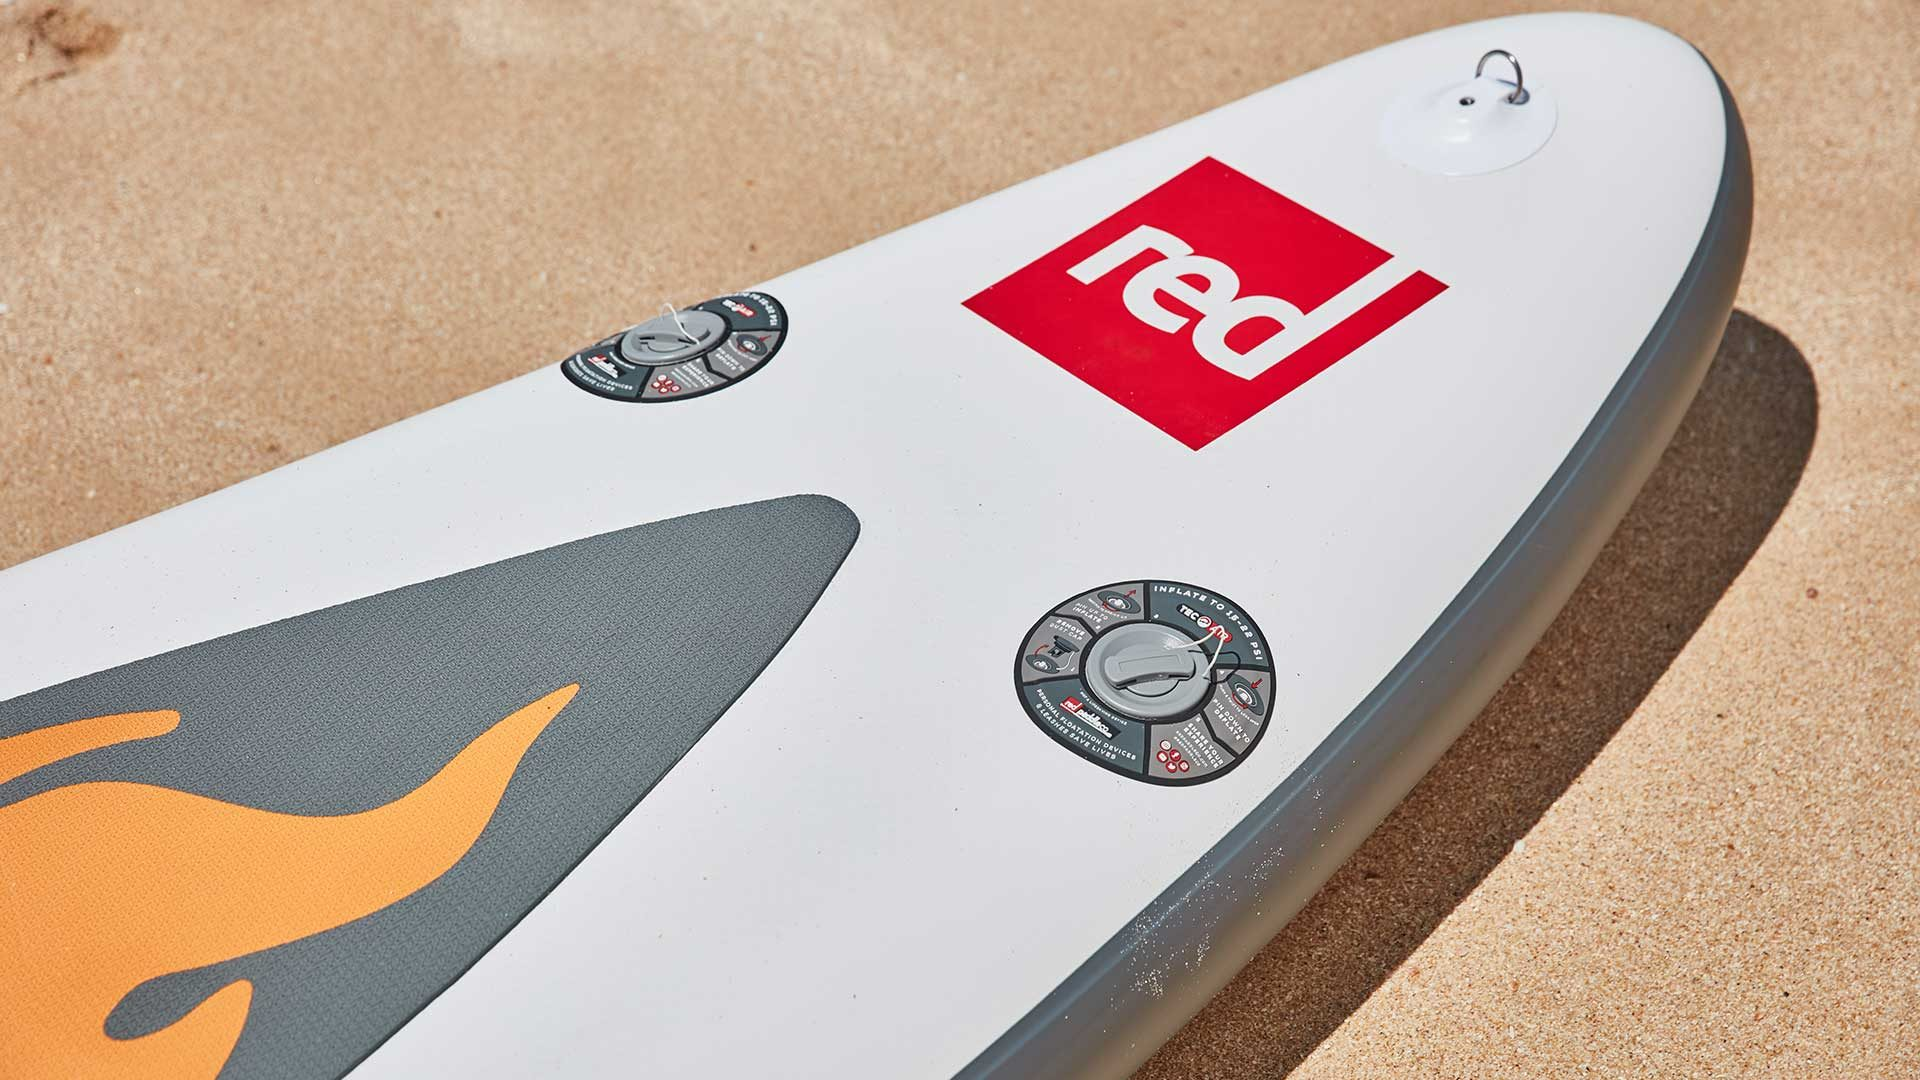 redpaddleco-220-dragon-inflatable-paddle-board-desktop-gallery-valve